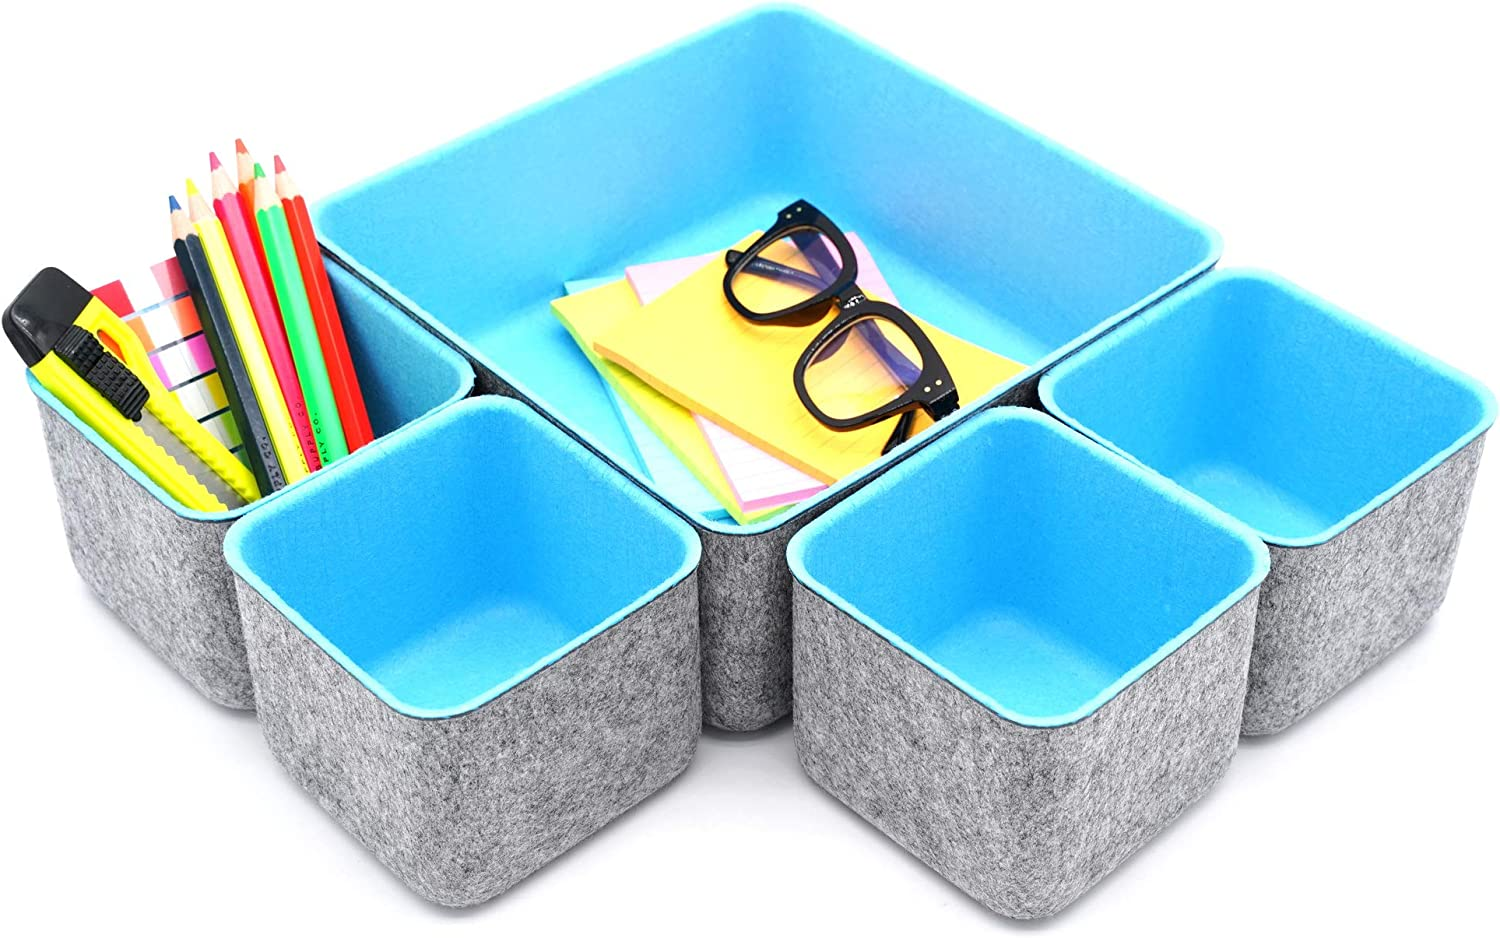 Welaxy Storage bins Set Office Drawer Organizers for School Home Kitchen Closet Cabinet Desk organize boxes Gifts idea Pack of 5 Sky Blue)